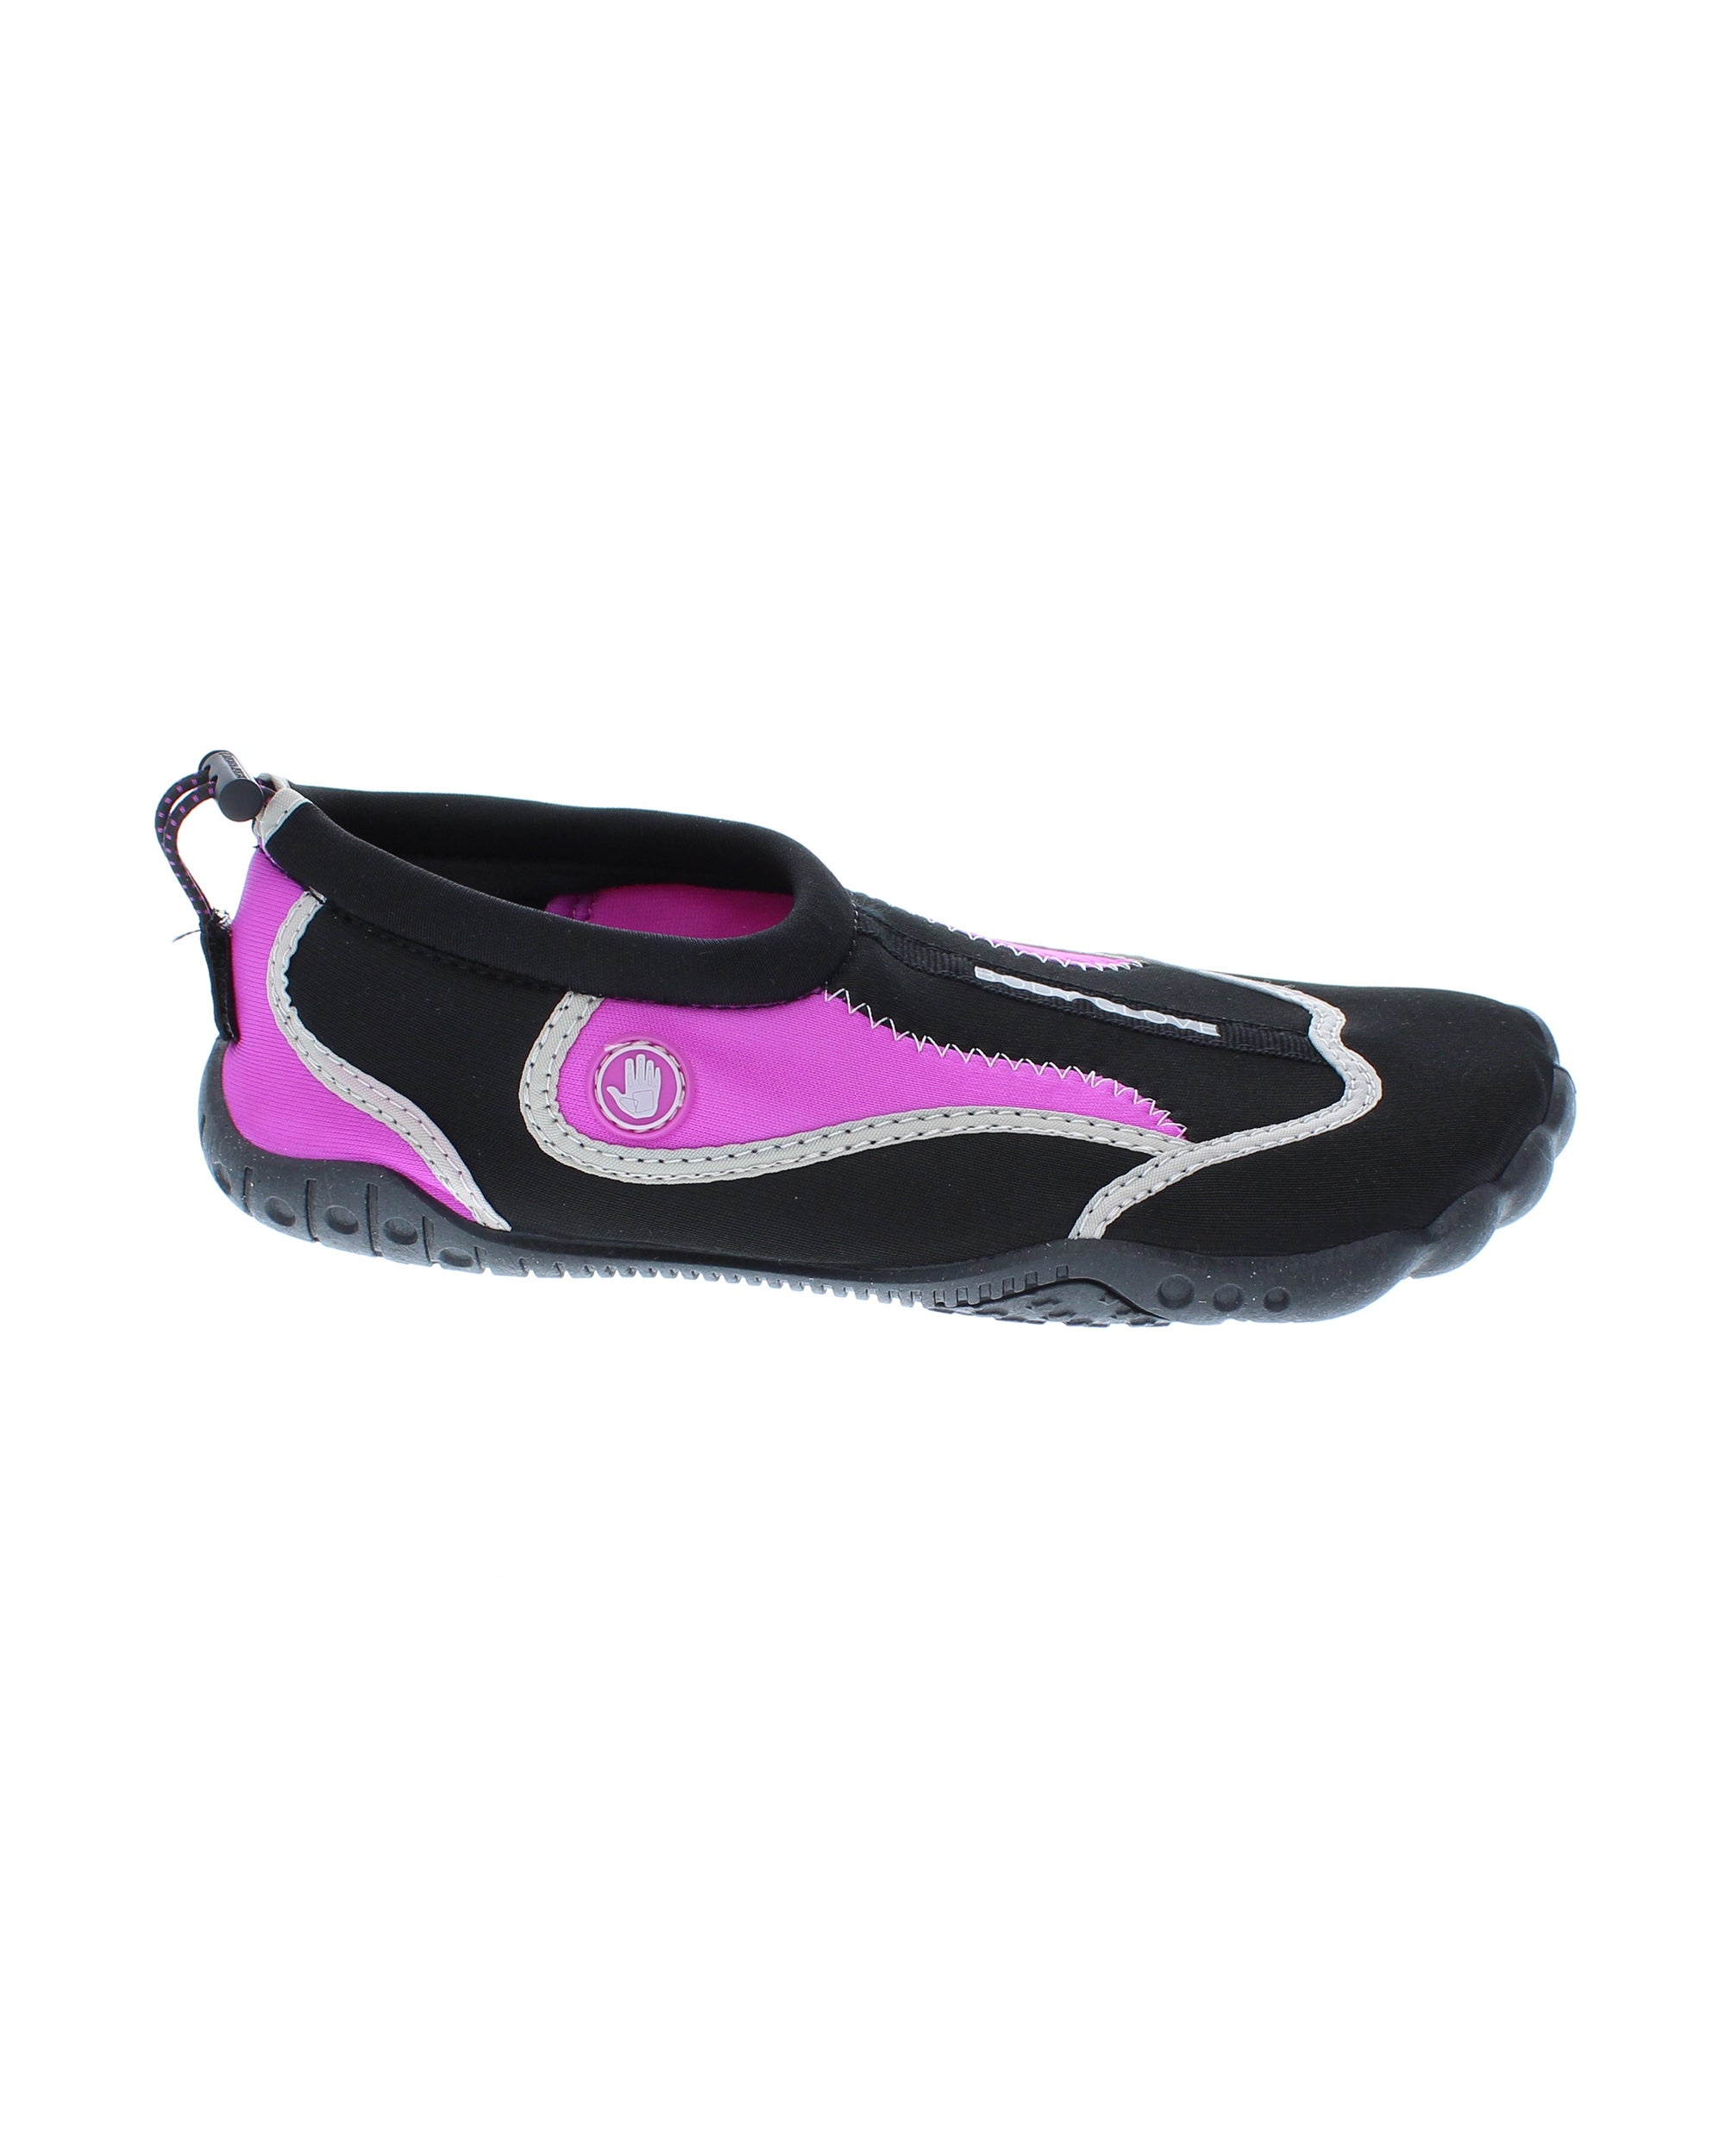 Women's Soak Water Shoes - Black/Oasis Purple